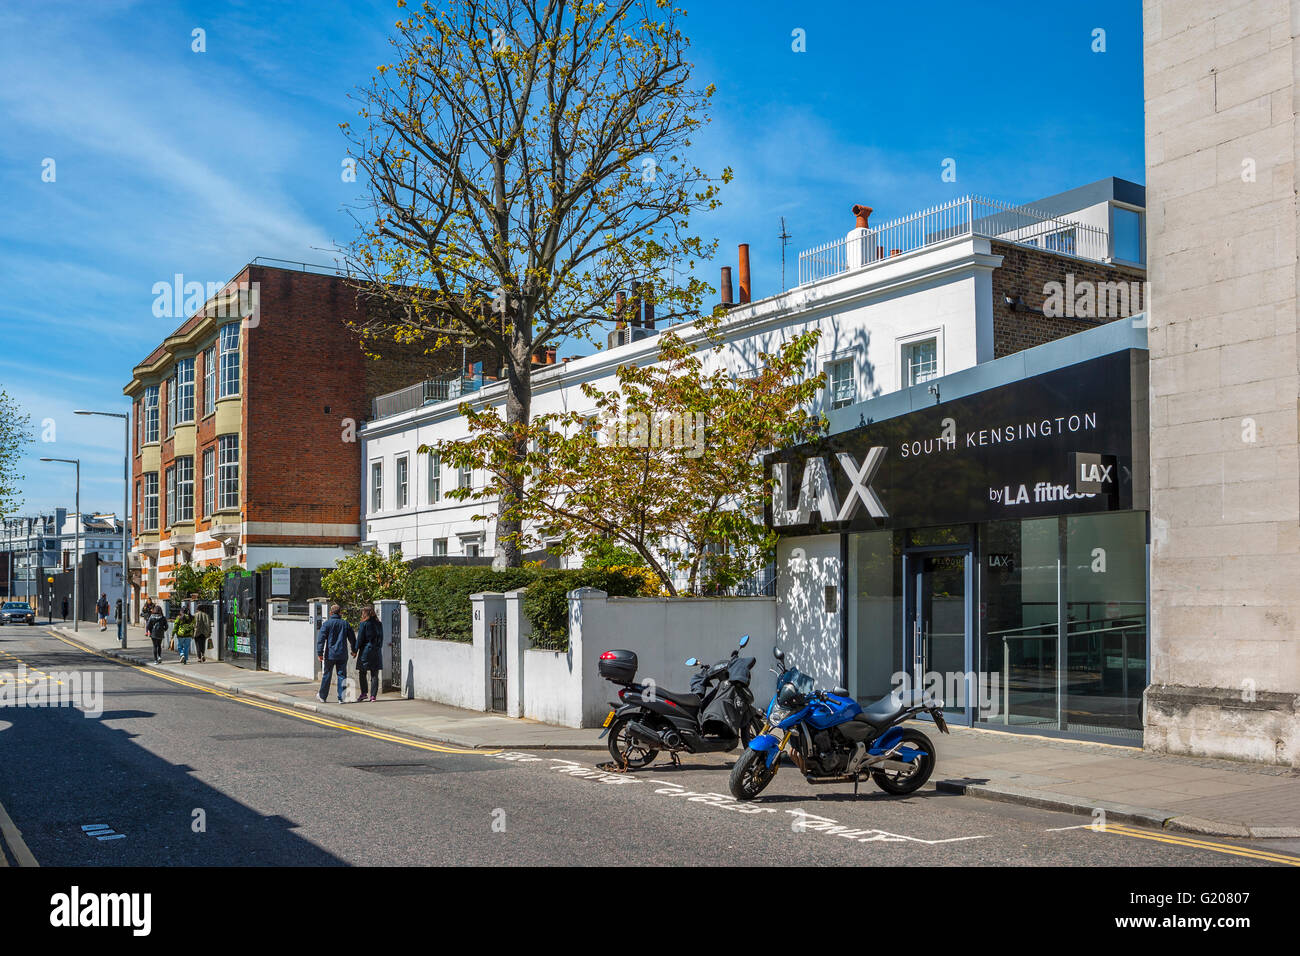 Lax South Kensington, London - Stock Image